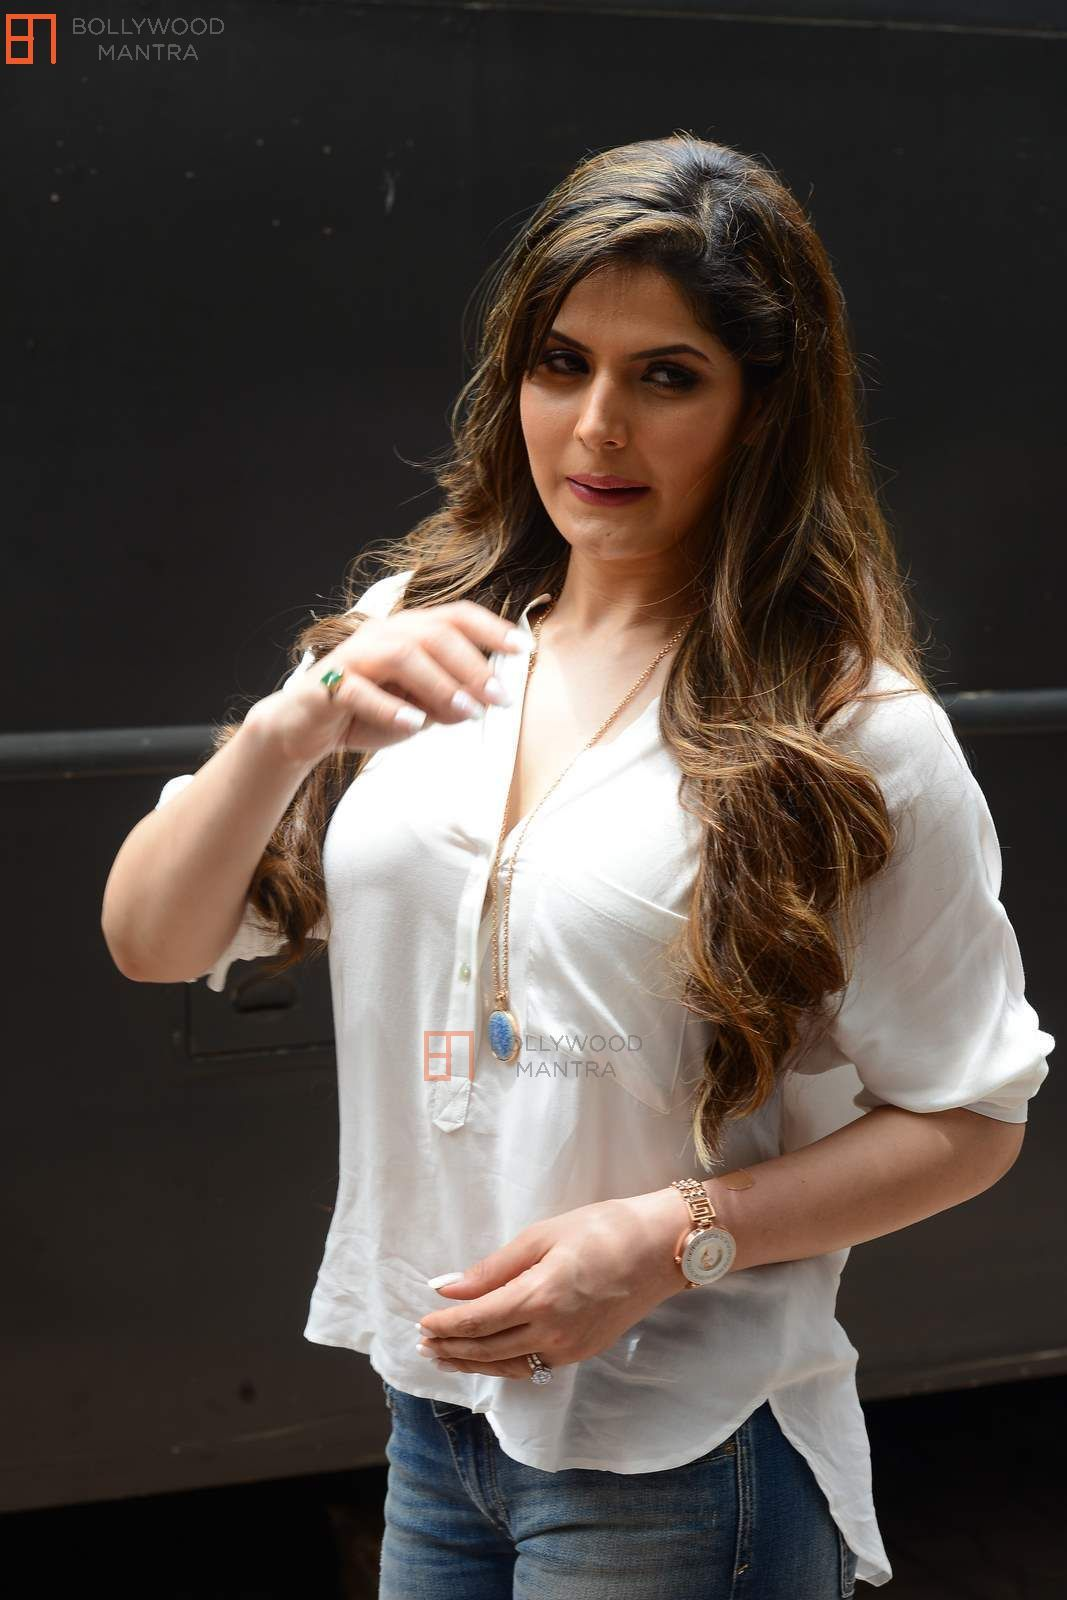 zarine khan sharman joshi - photo #23